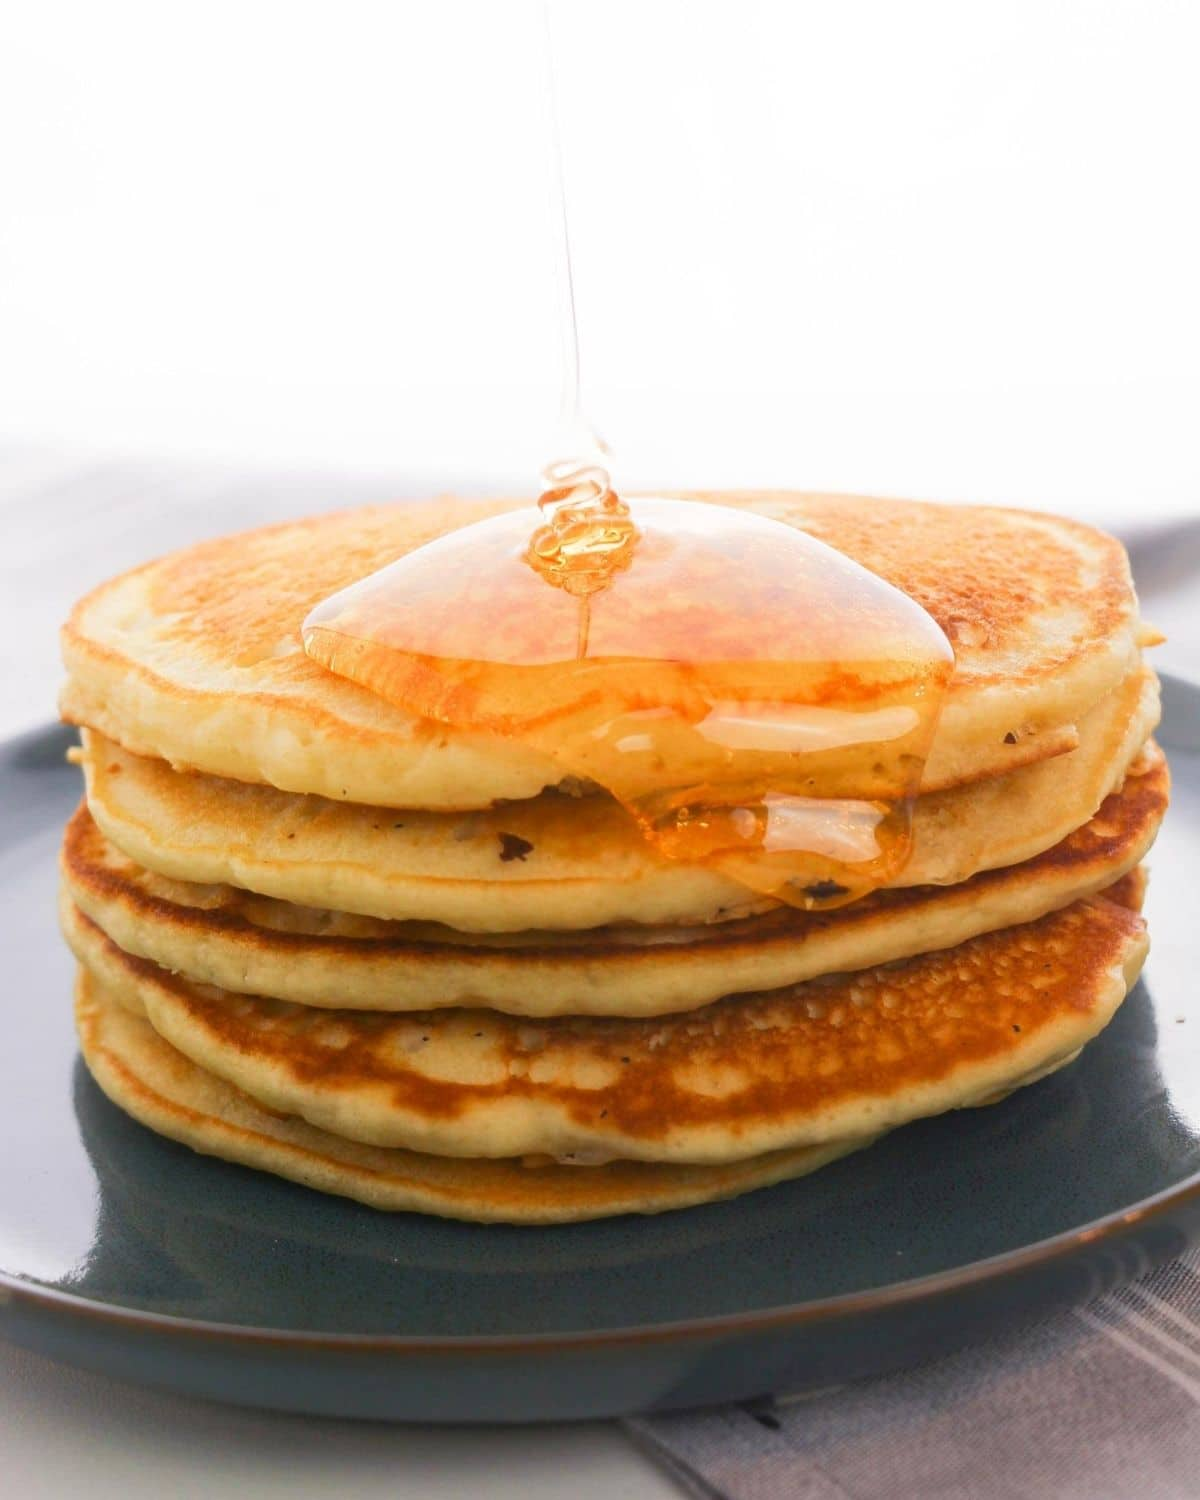 A stack of pancakes with maple syrup being poured over them.